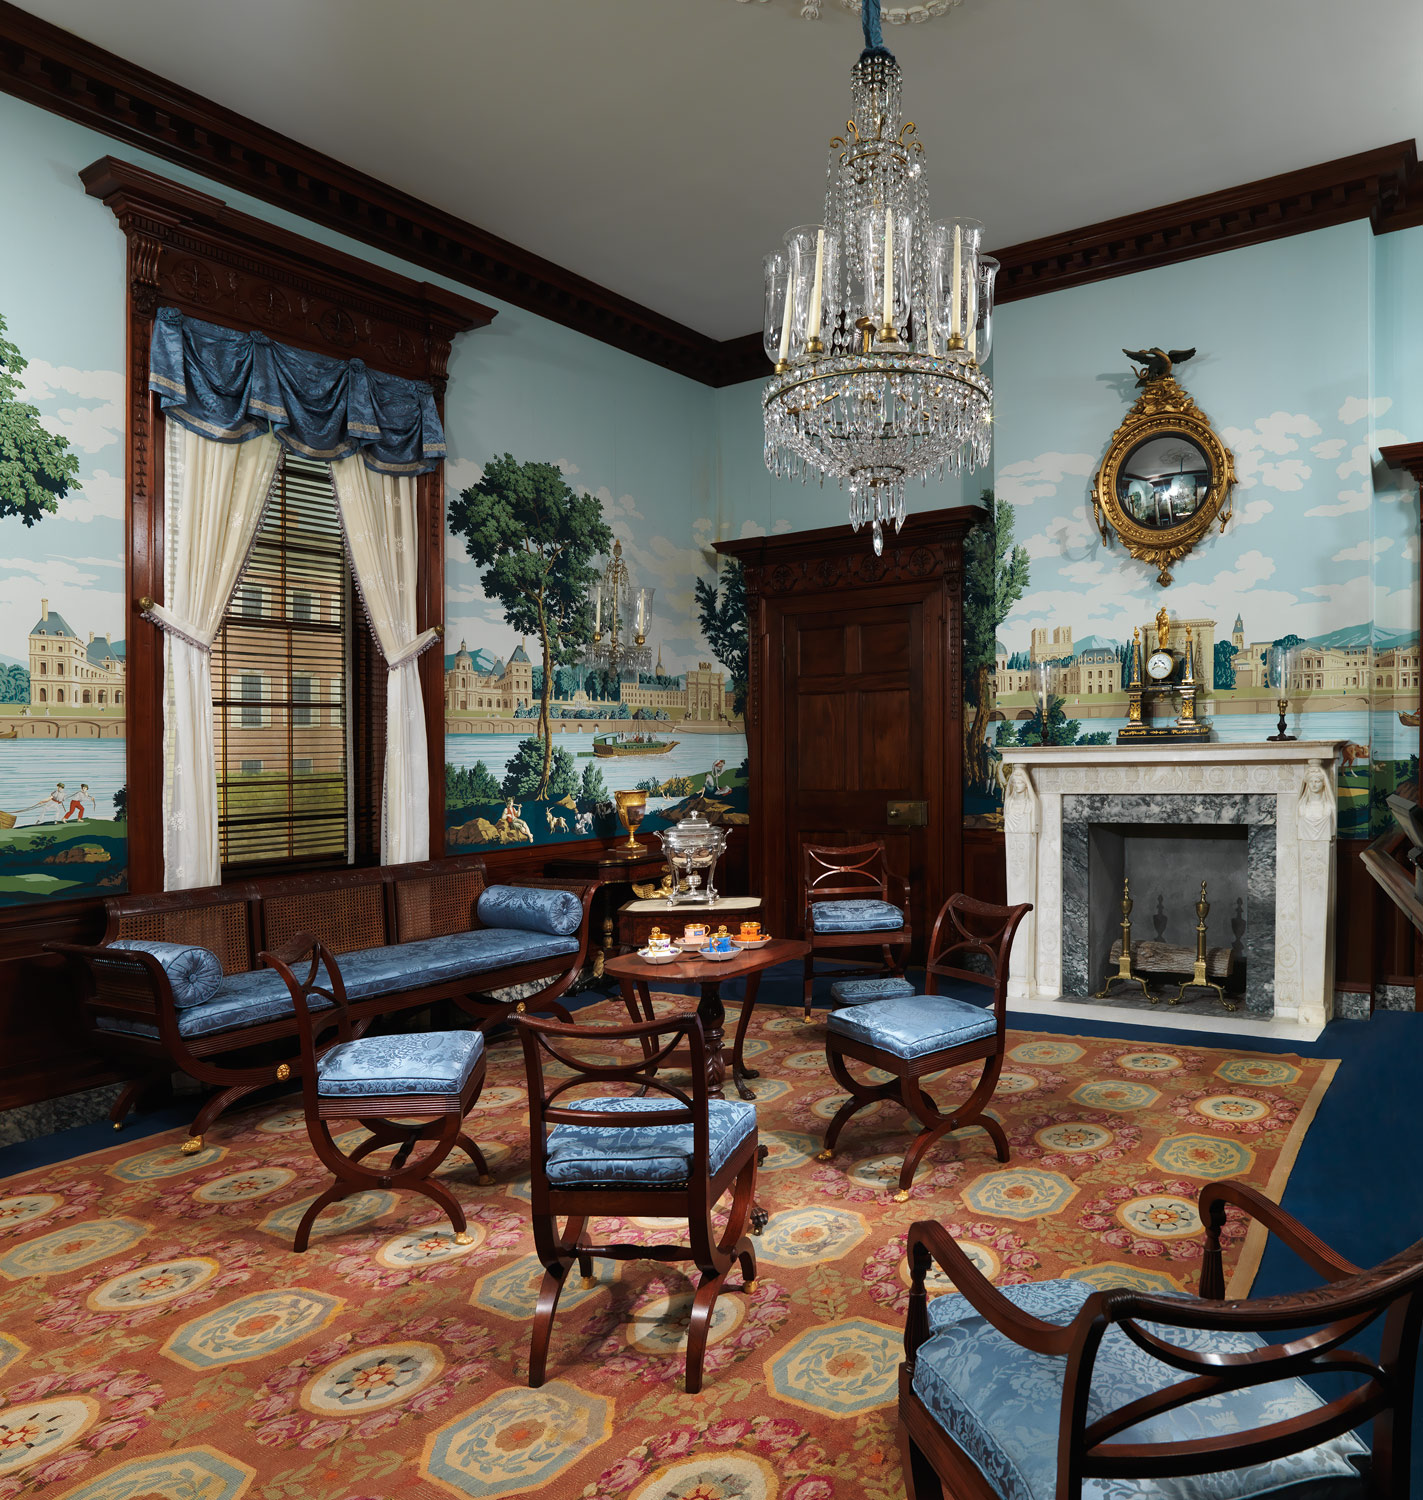 Parlor from the William C. Williams House